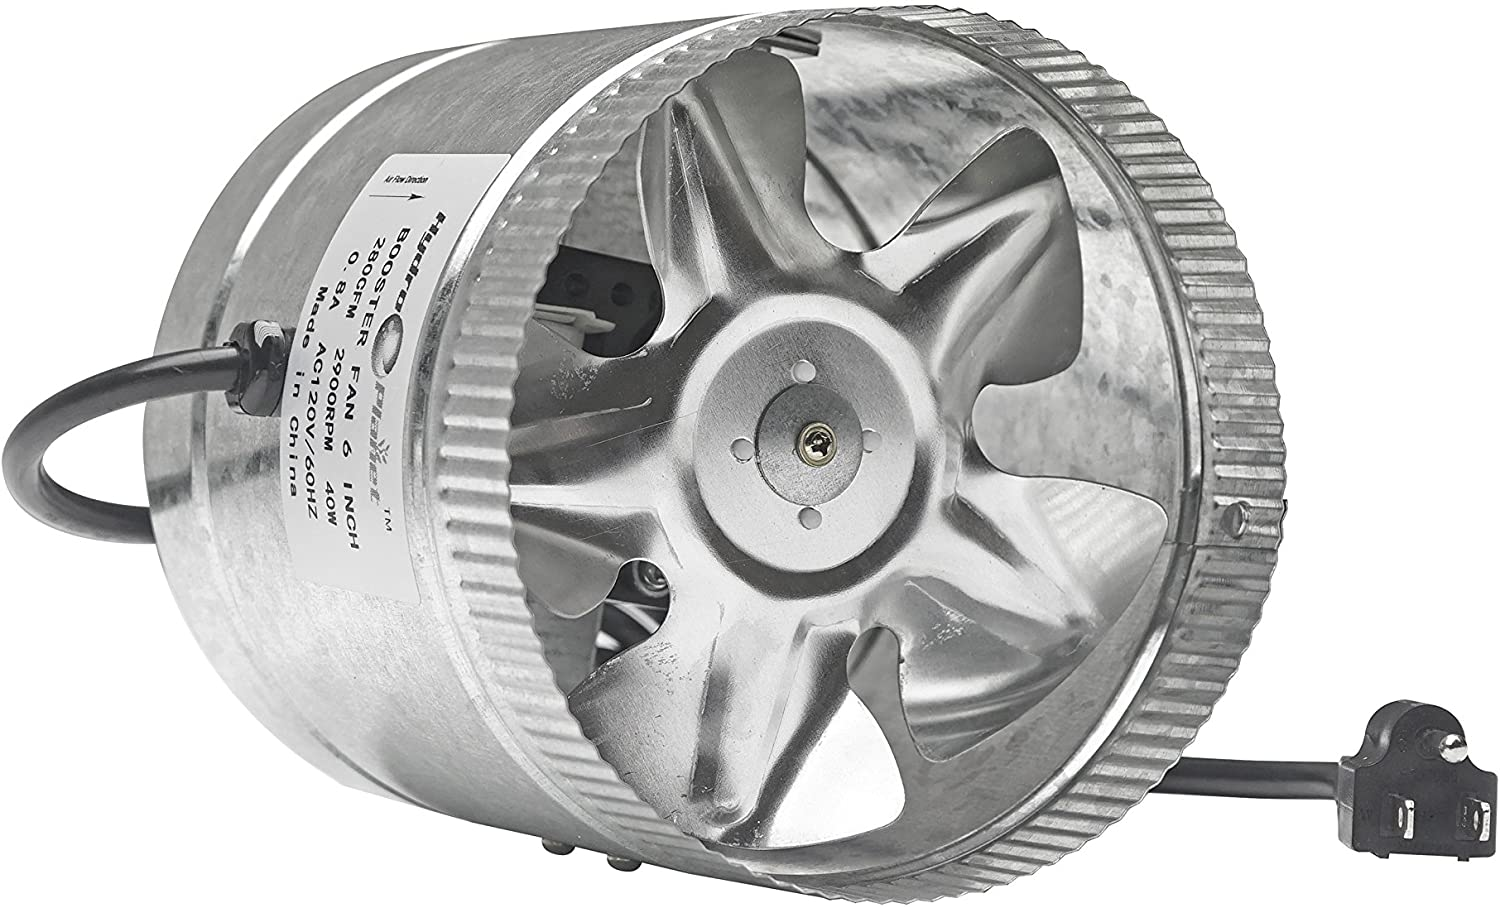 Hydroplanet™ 6 Inch Exhaust Duct Fan High CFM, 6 280 CFM (6 Inch)